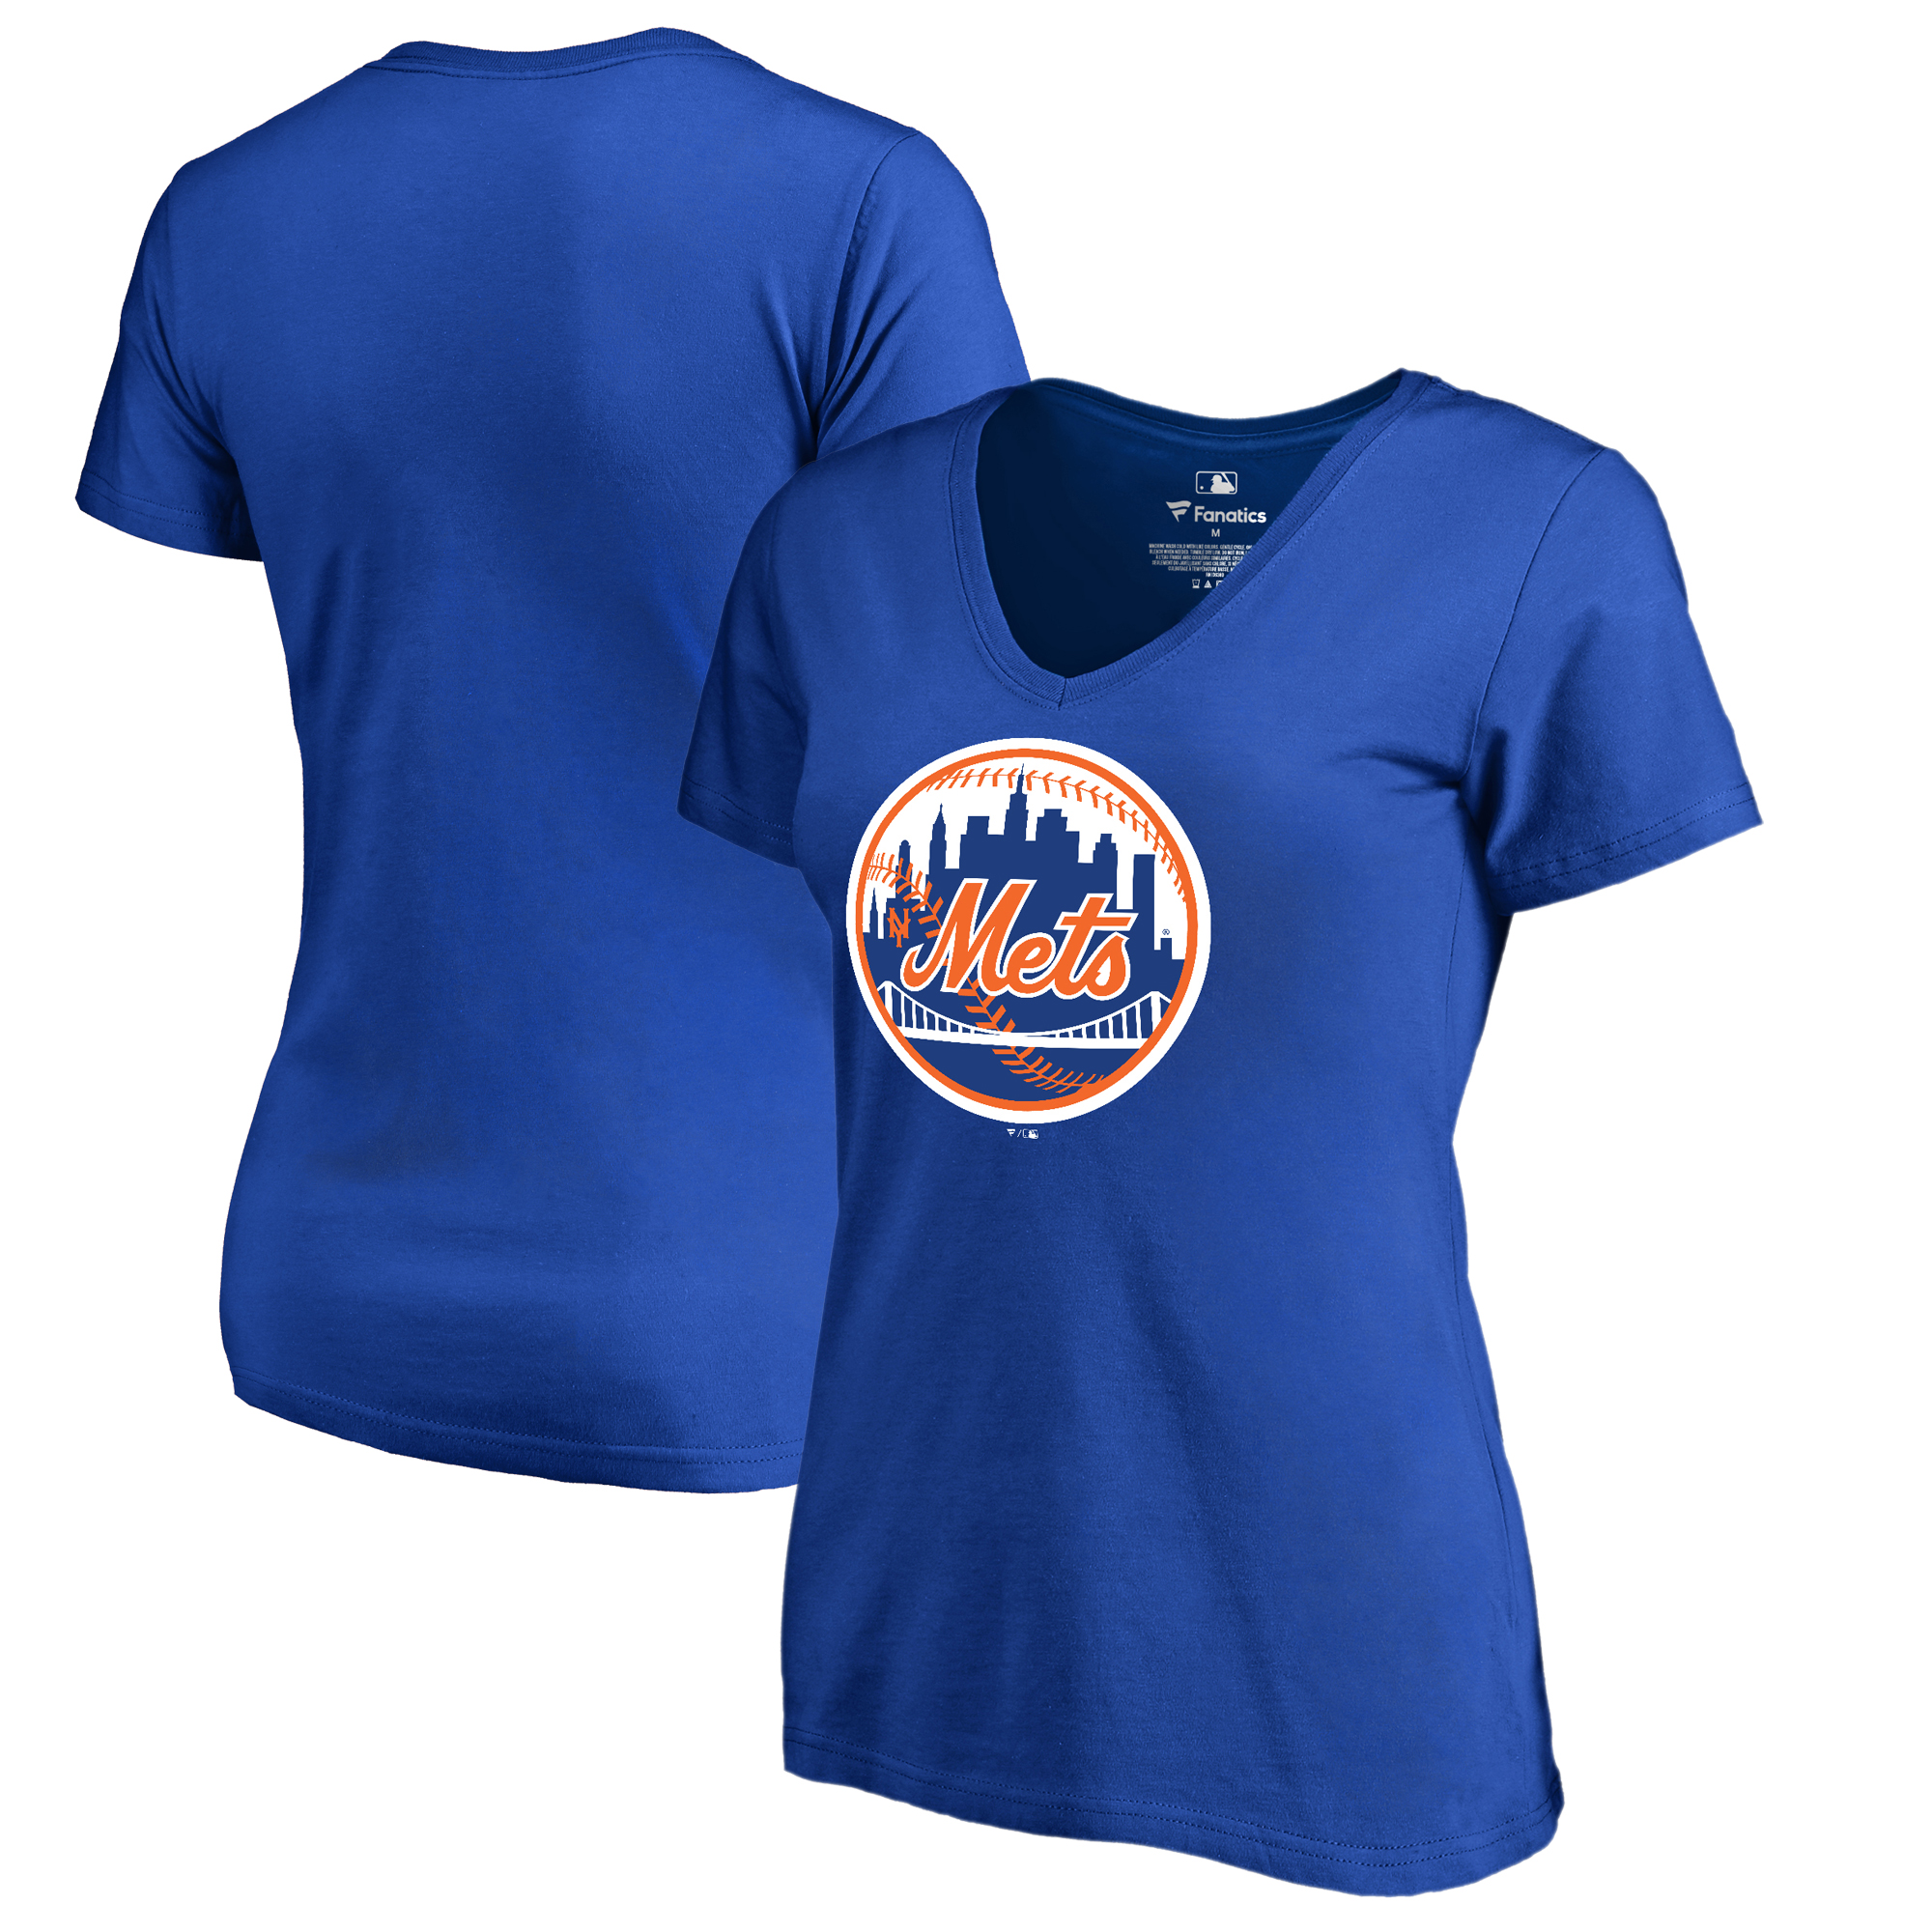 New York Mets Fanatics Branded Women's Plus Sizes Cooperstown Collection Forbes T-Shirt - Royal